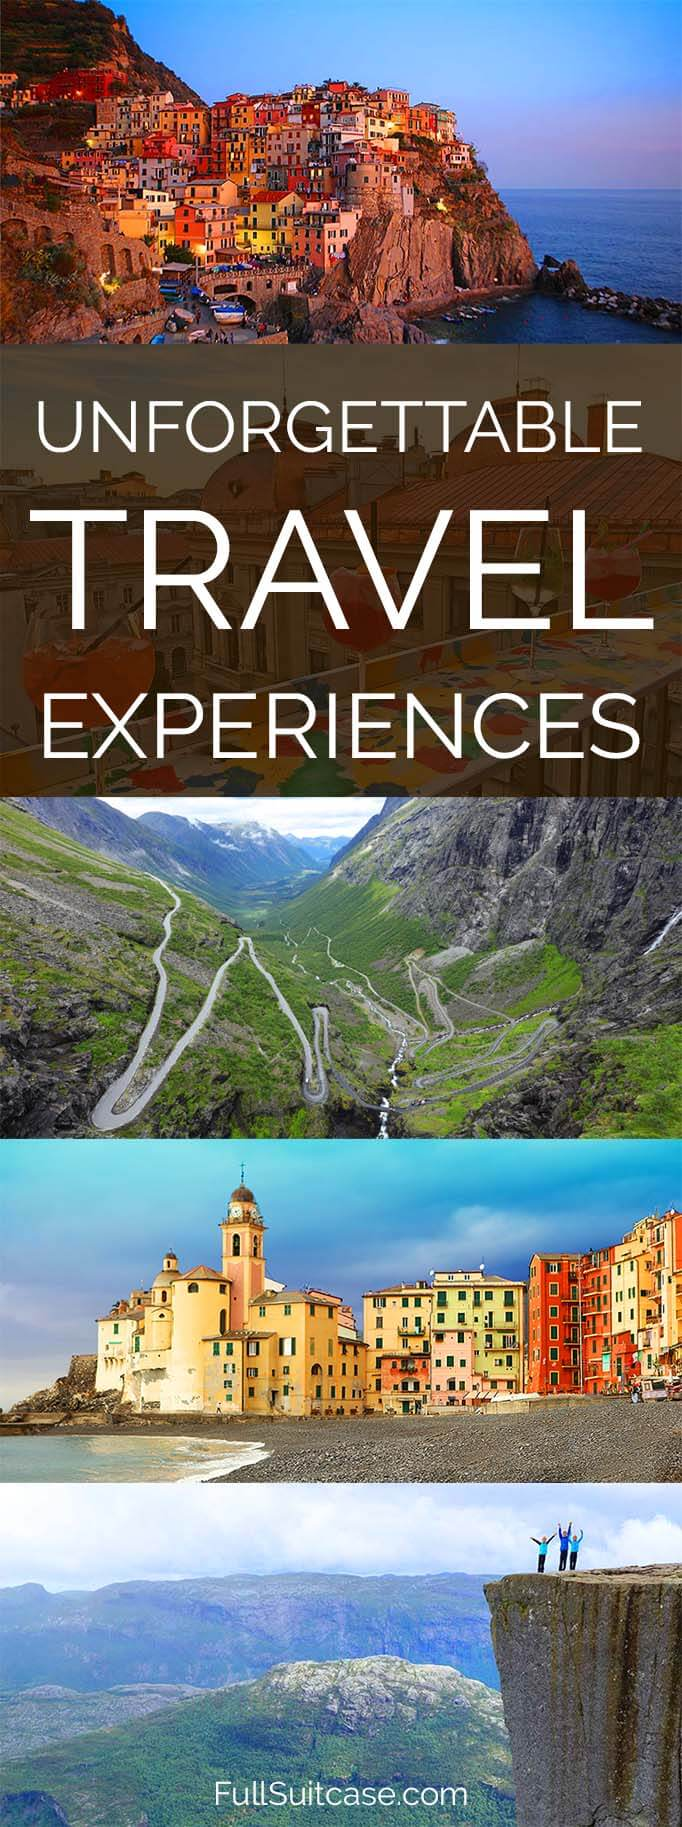 Unforgettable travel experiences - best of the year in travel